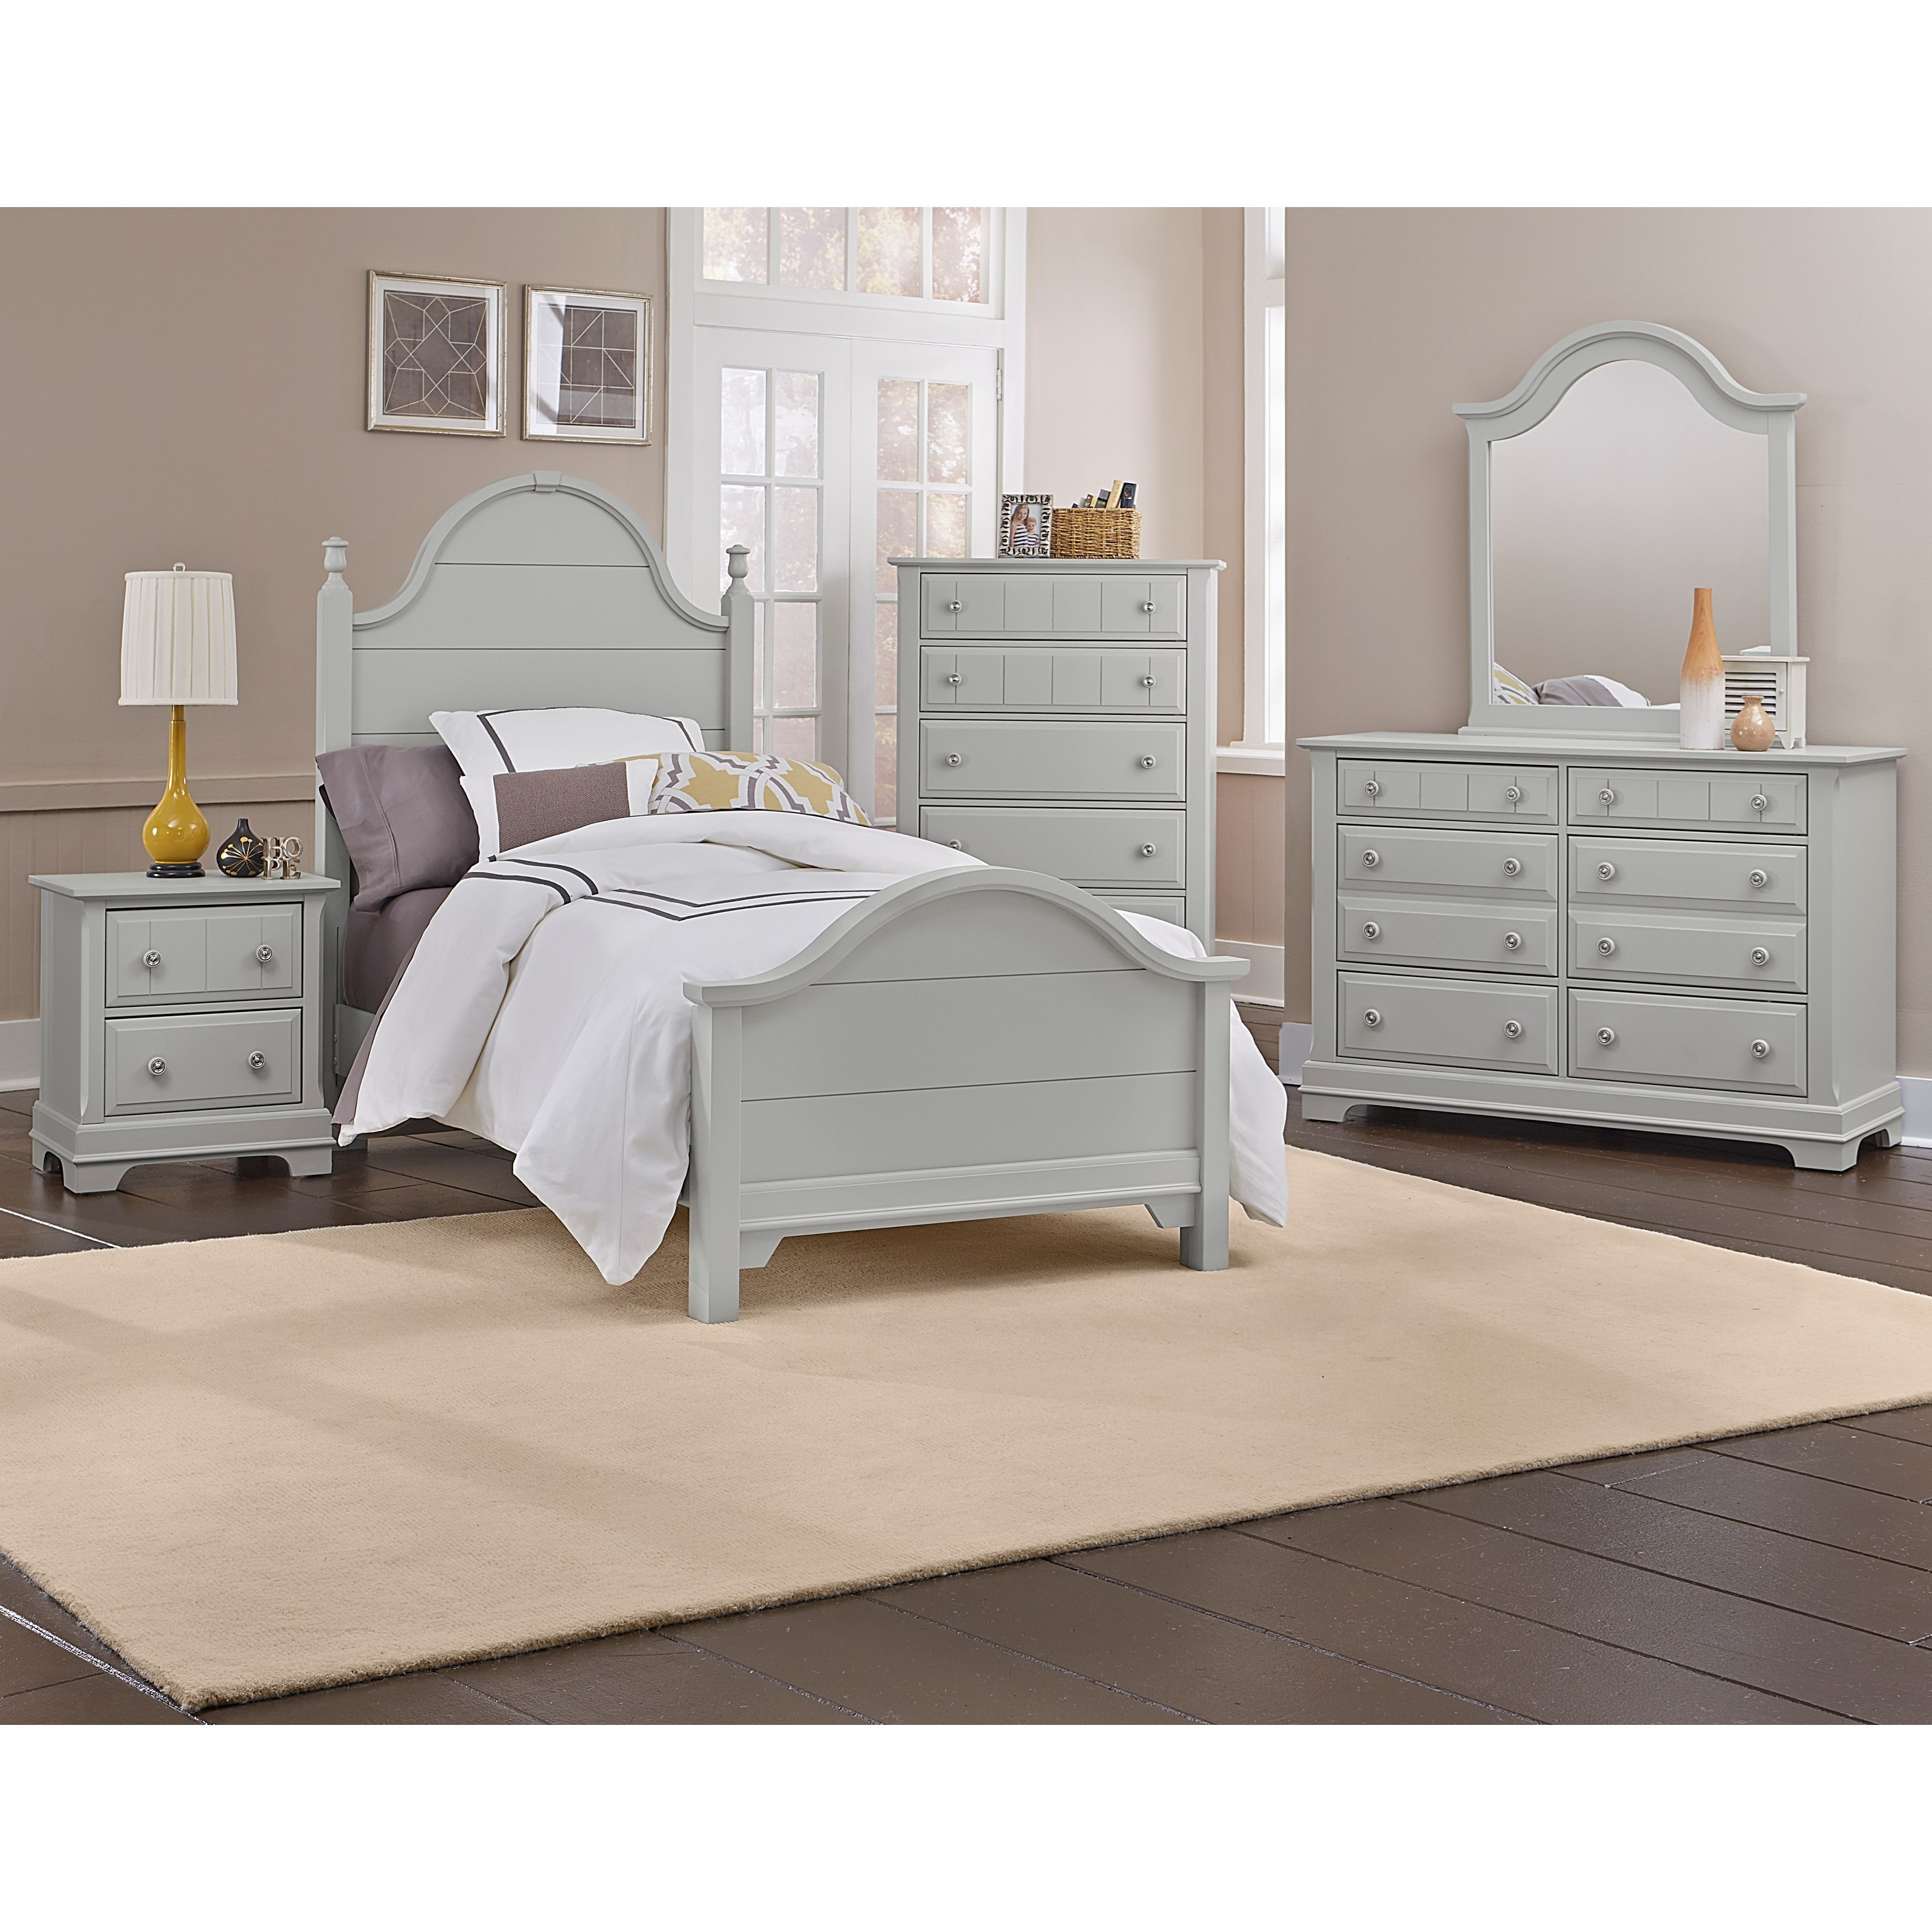 Vaughan Bassett Cottage Full Bedroom Group - Item Number: BB22 F Bedroom Group 2